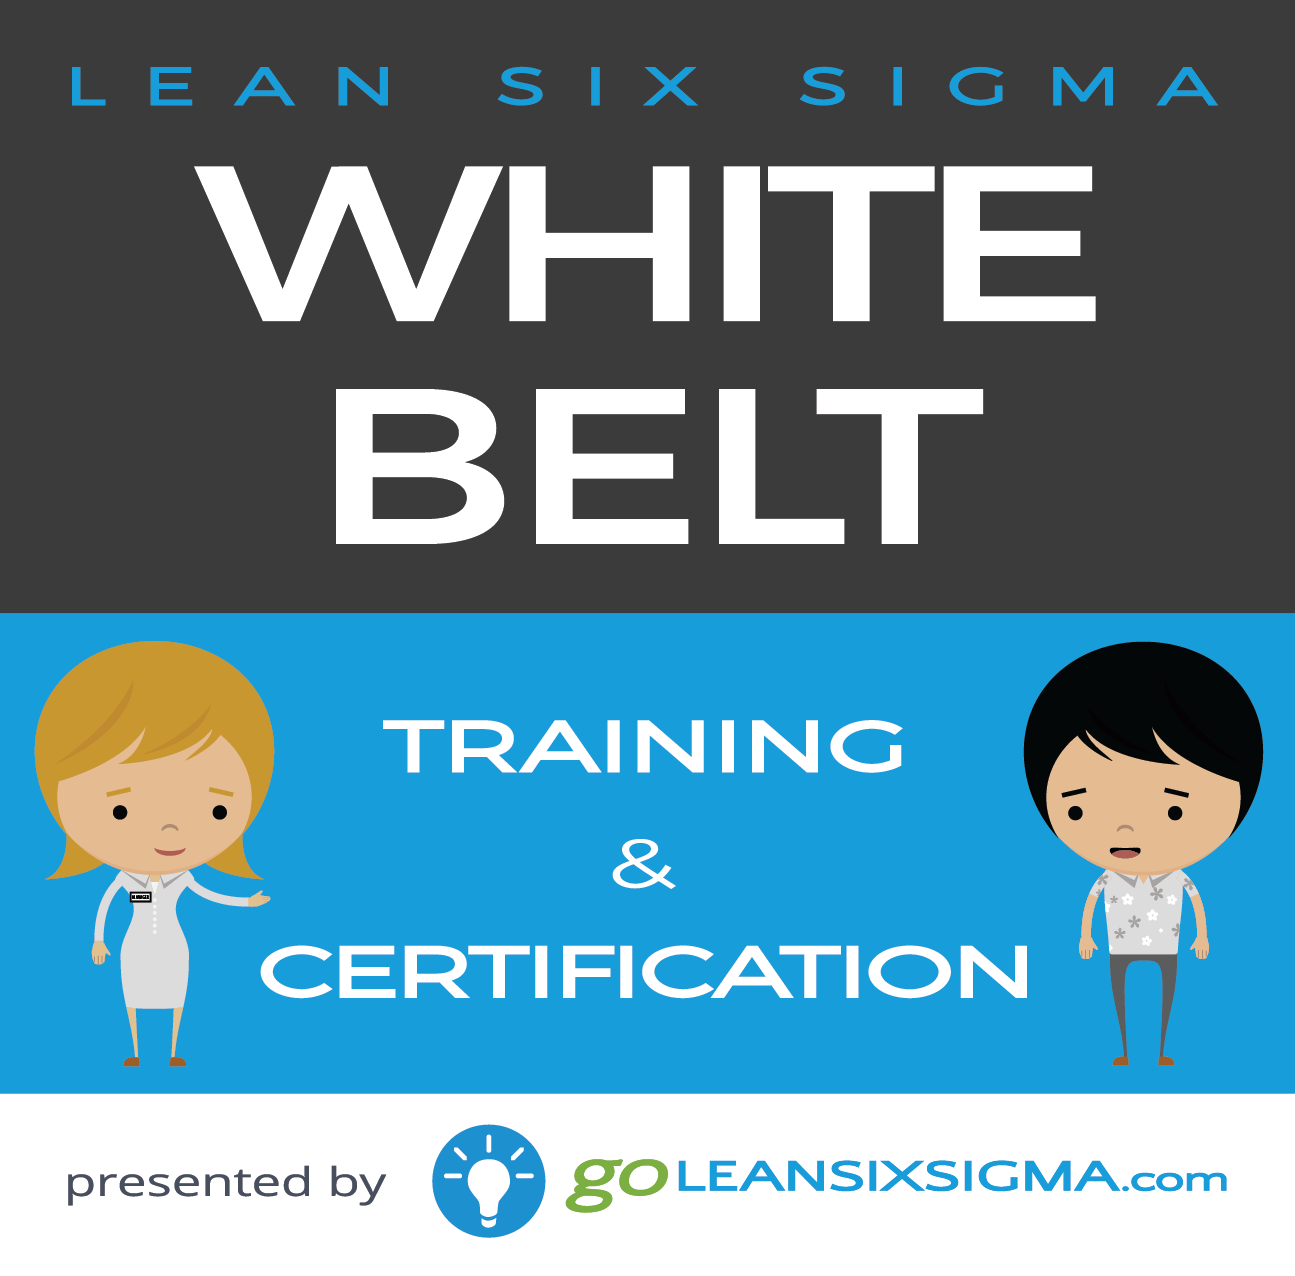 White Belt Training & Certification